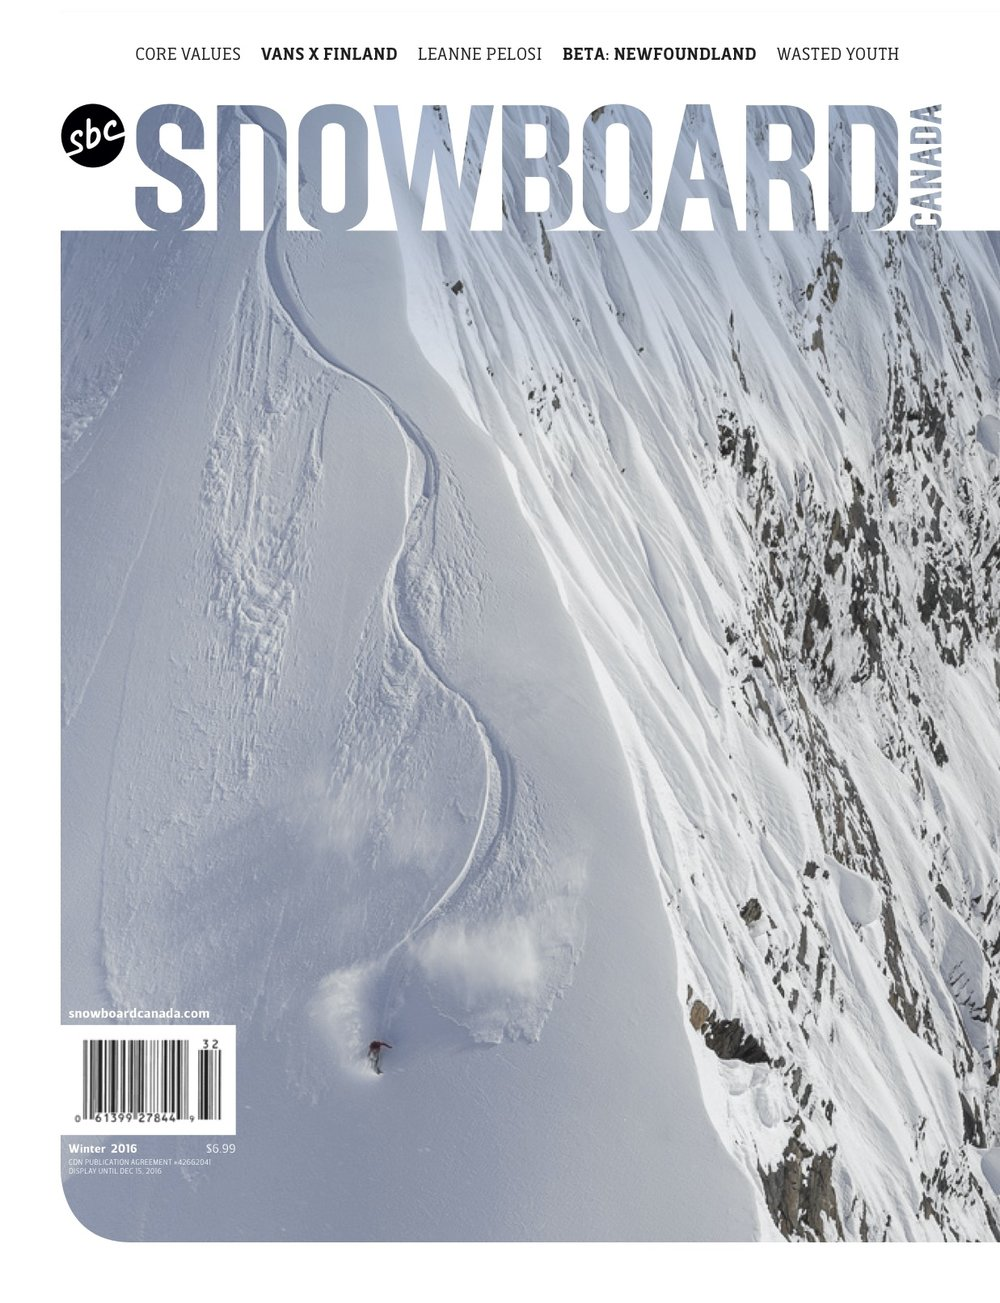 Snowboard2016_Cover.jpg